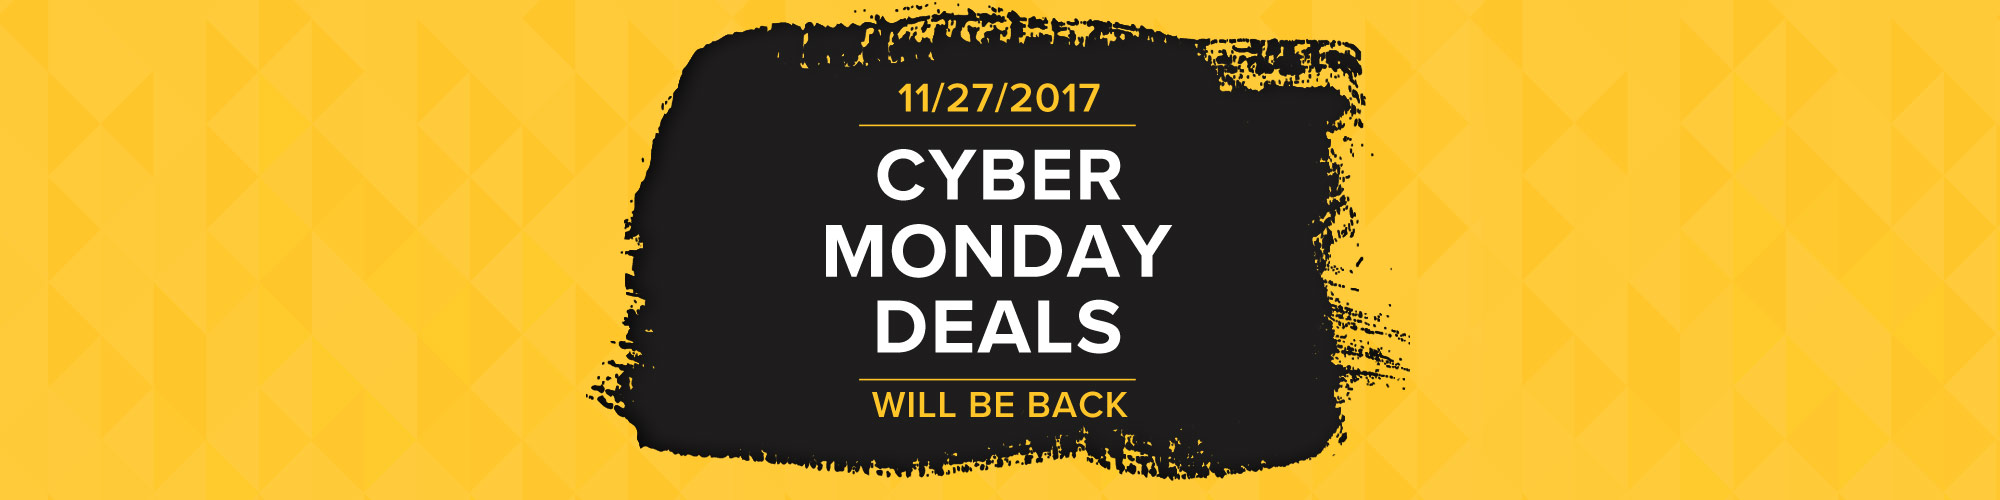 Cyber Monday Deals - Coming Soon